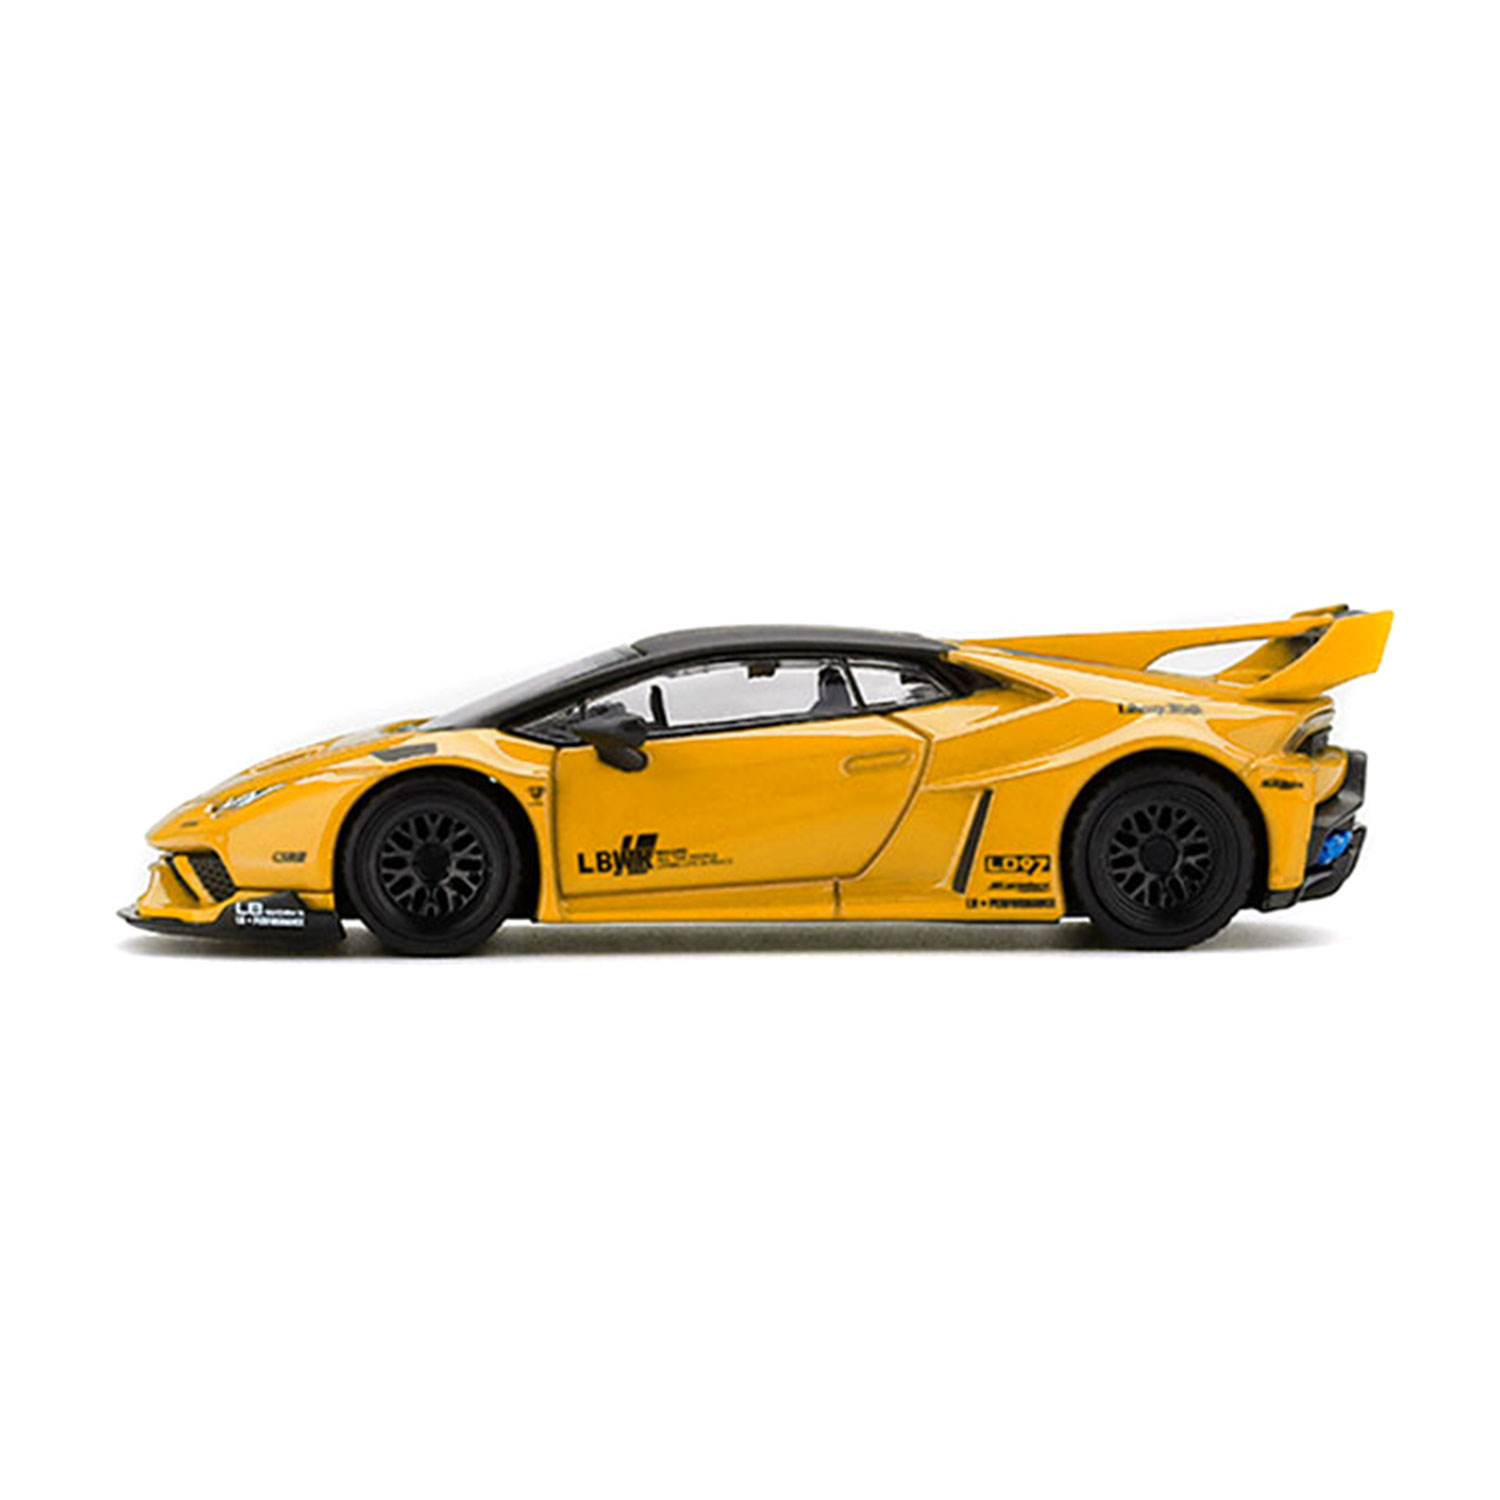 1/64 MINI GT LB-SILHOETTE Huracan Yellow